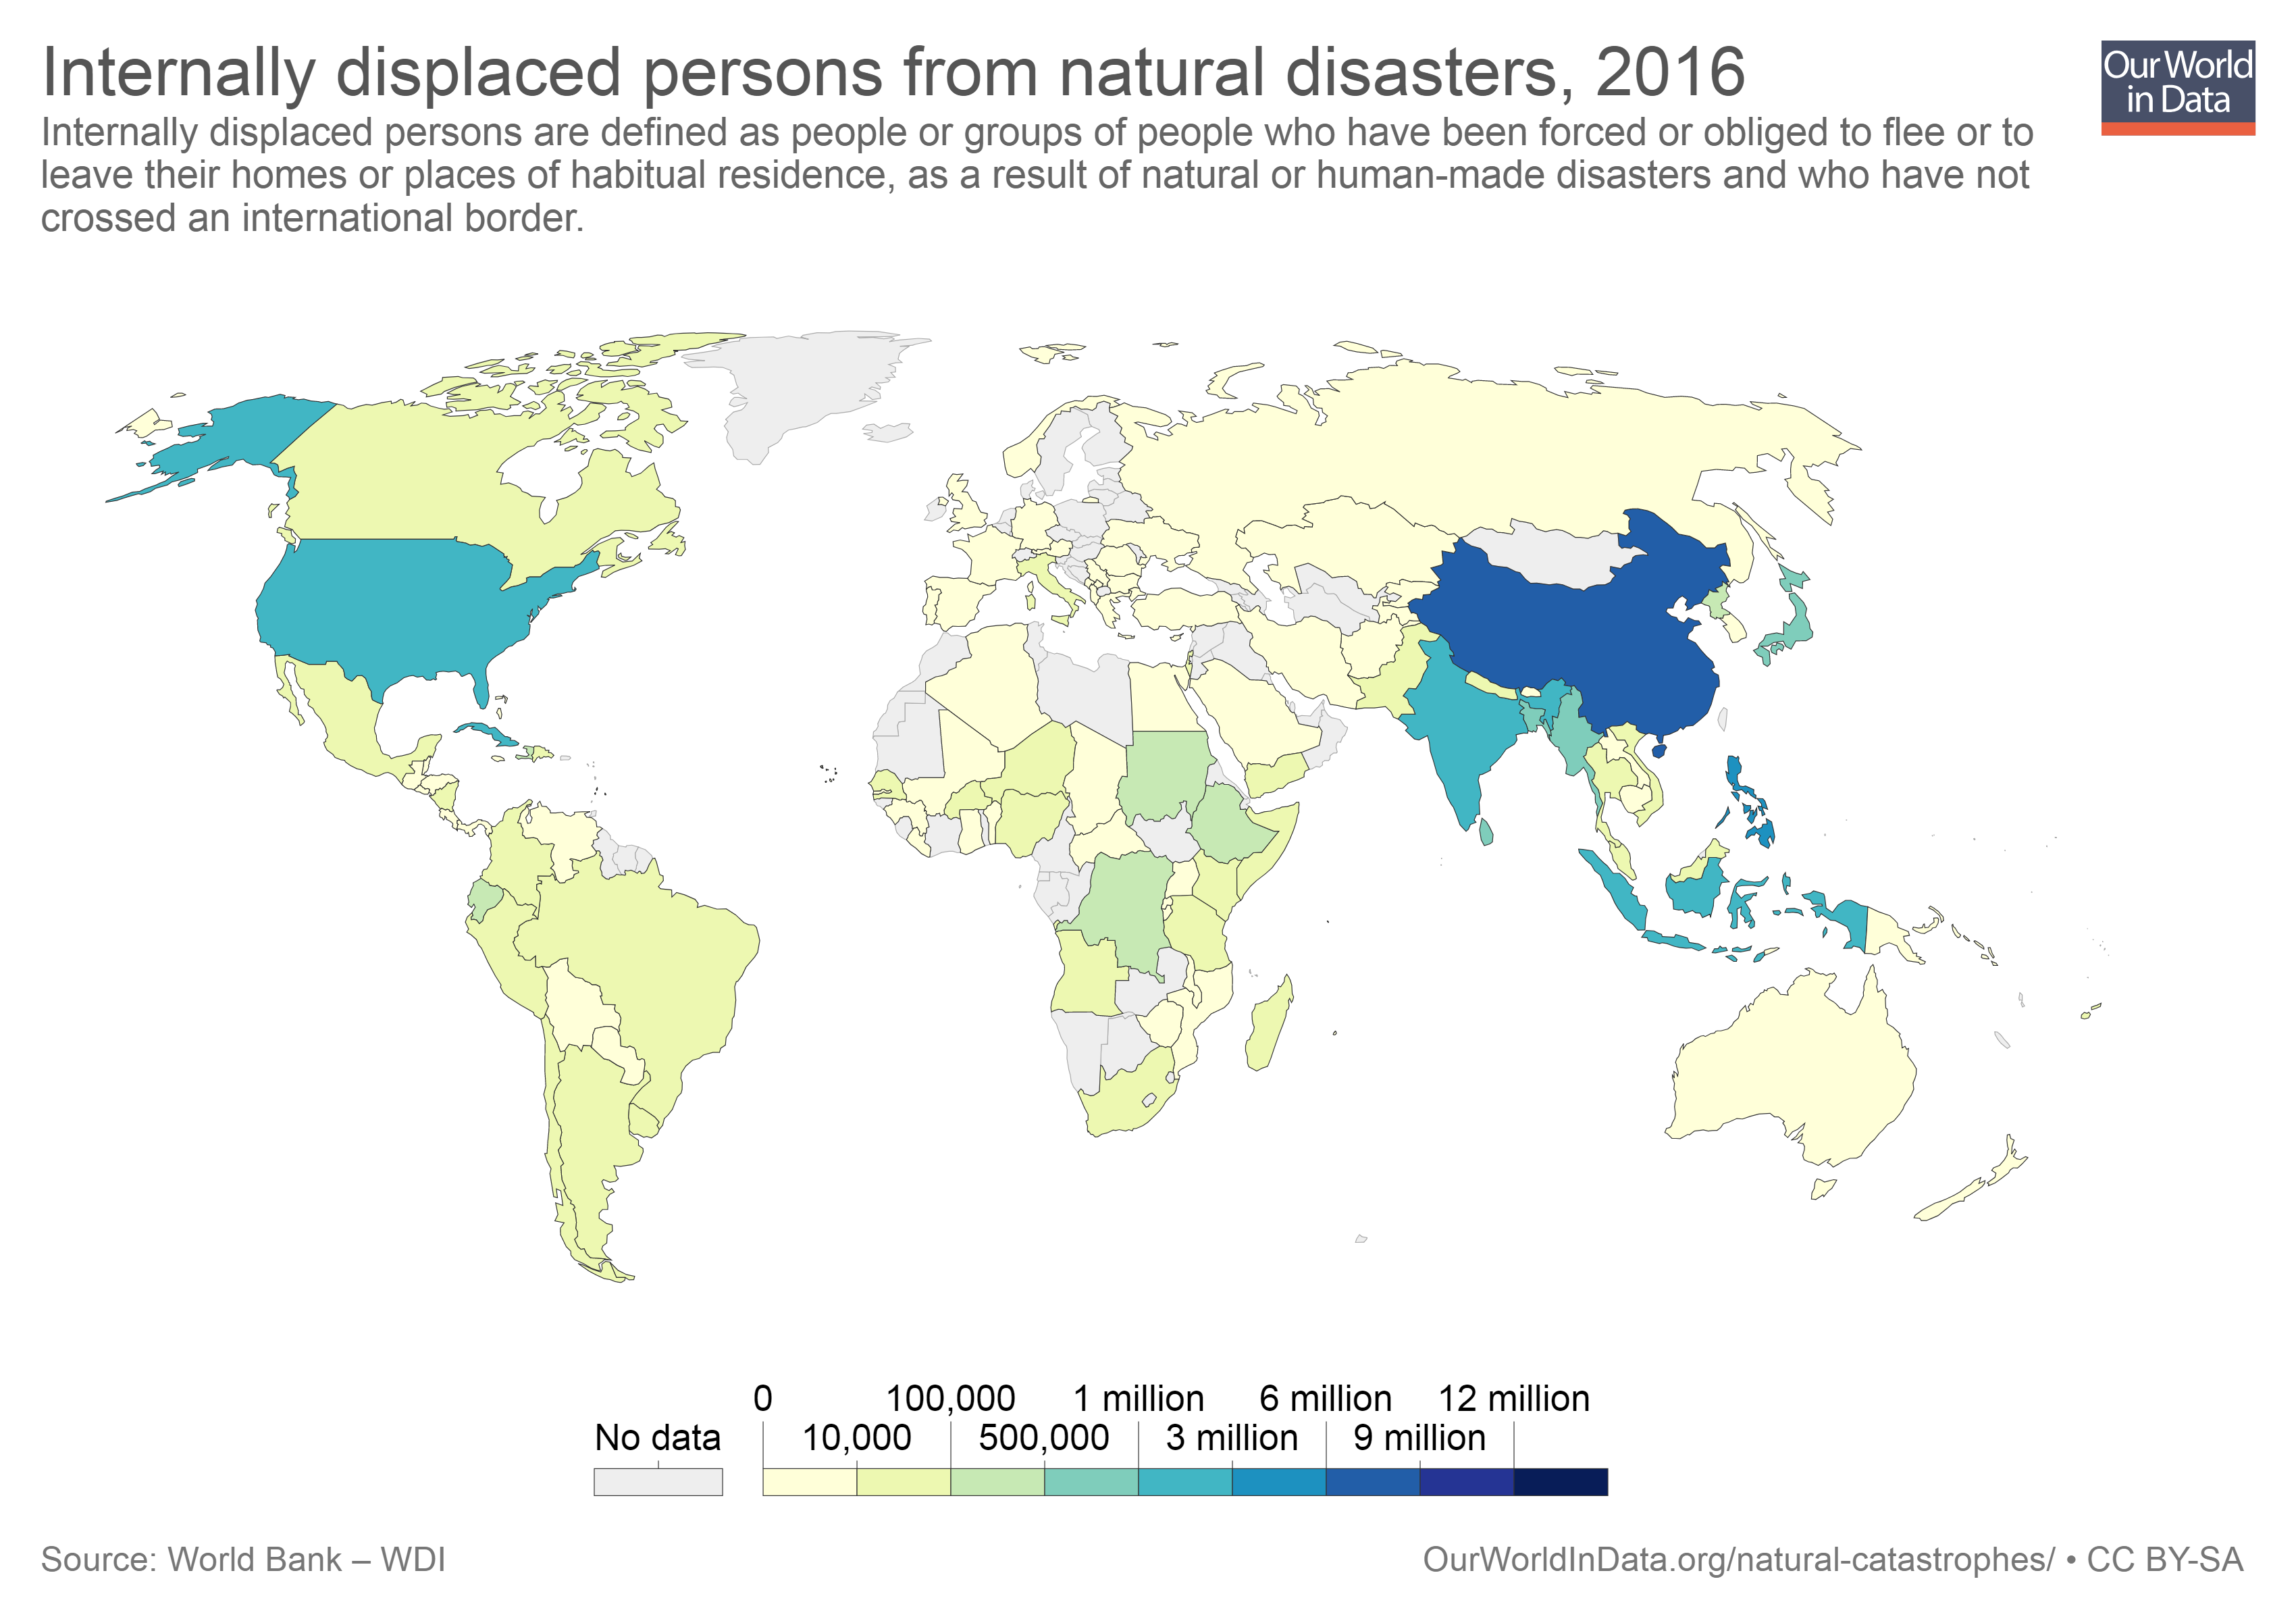 Map showing persons displaced by natural disasters in 2016